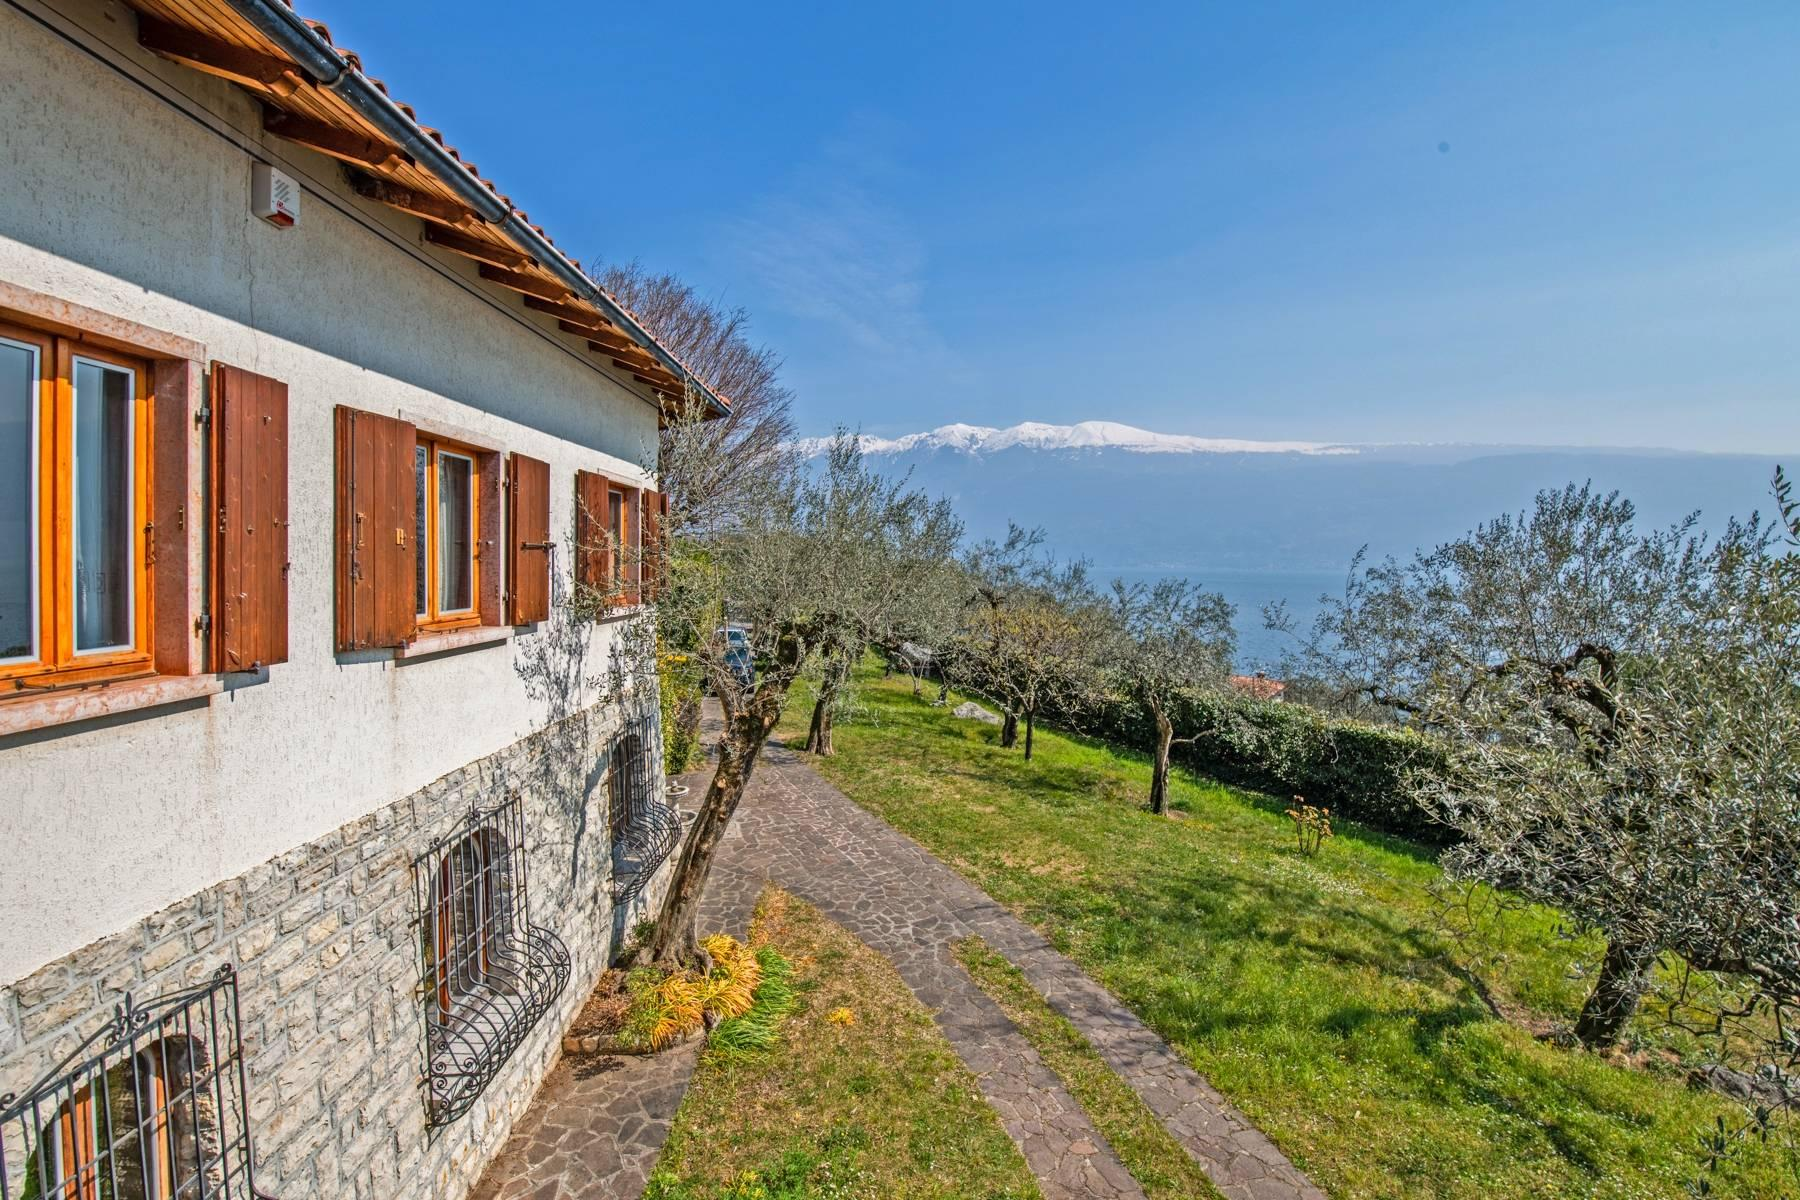 Villa with lake view in Gargnano surrounded by olive trees - 3